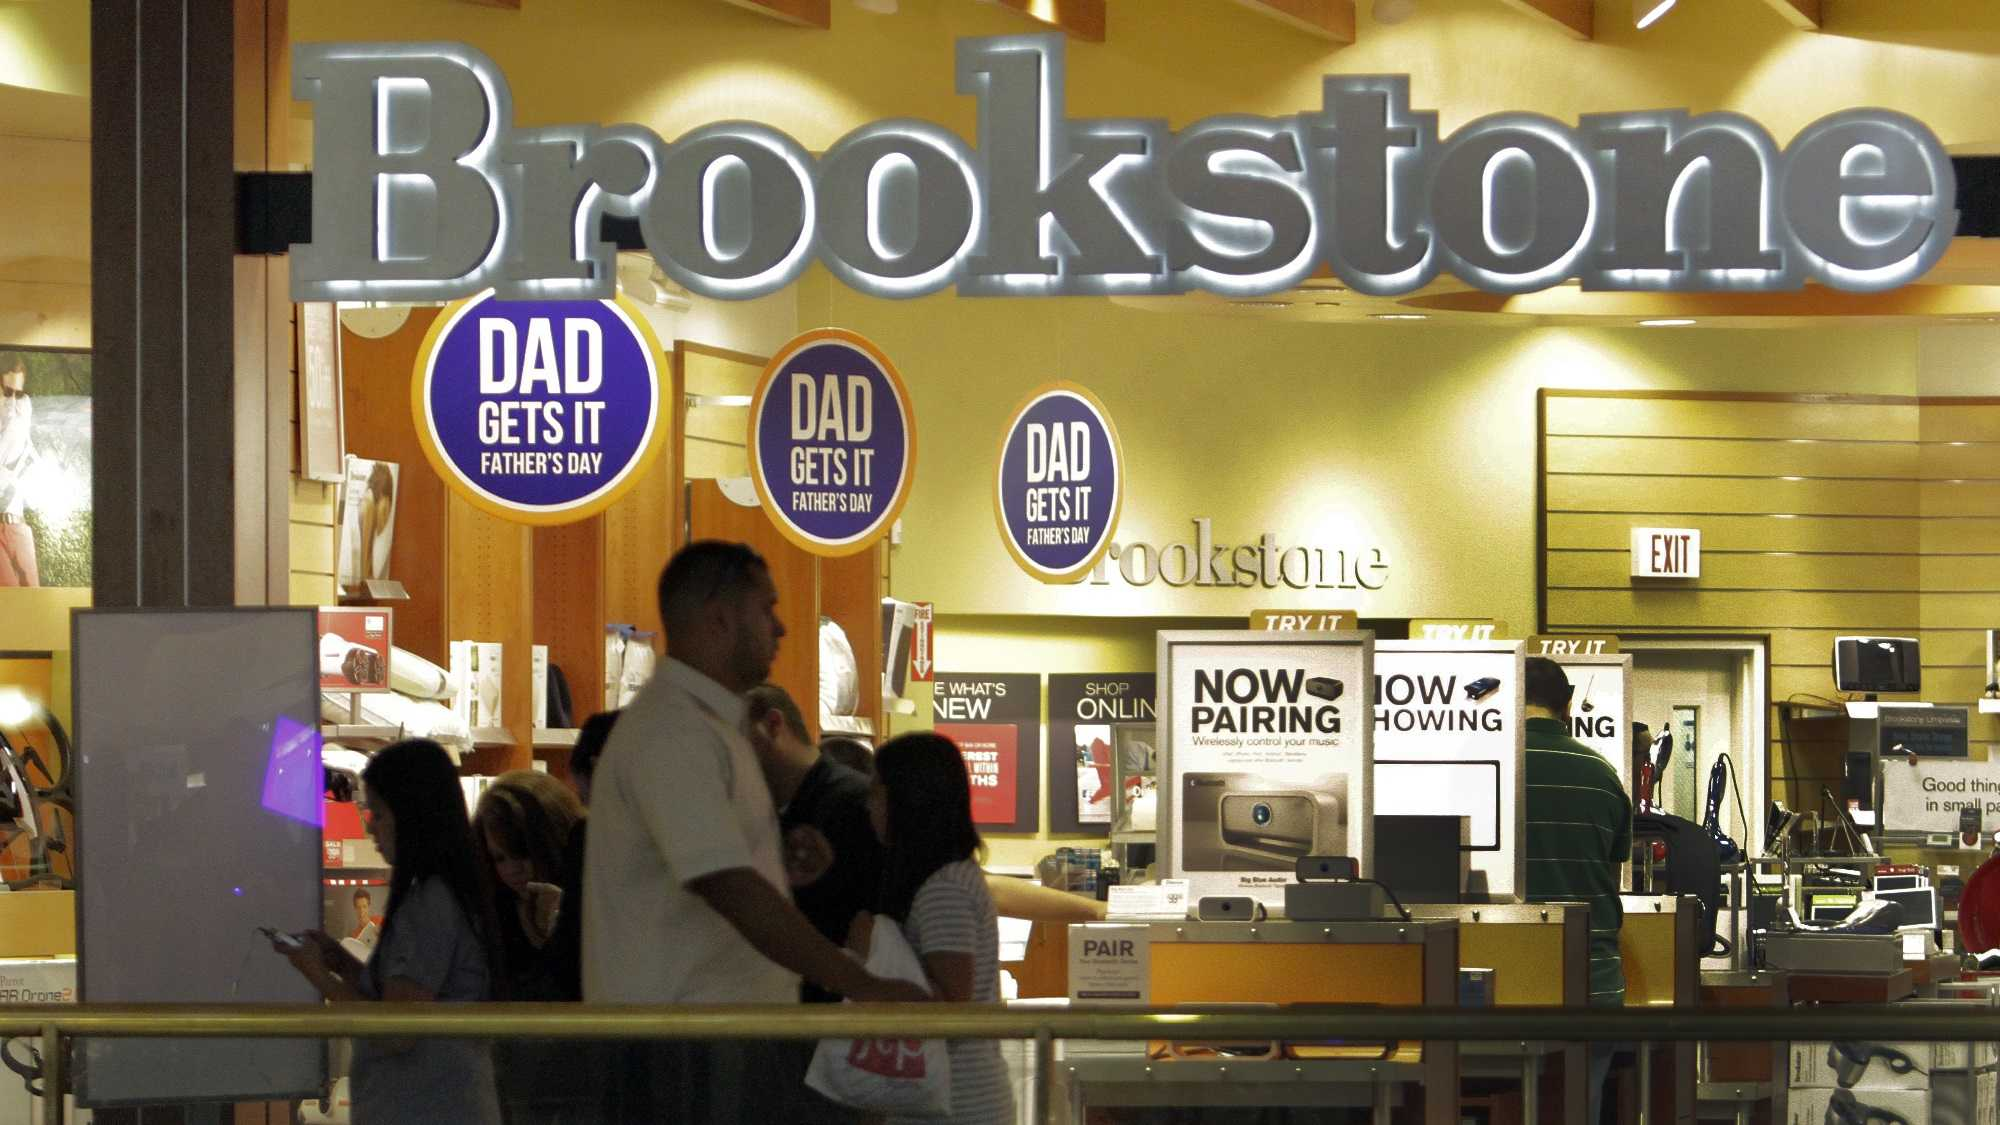 Shoppers at aBrookstone storein the Glendale Galleria on Jun. 12, 2012.